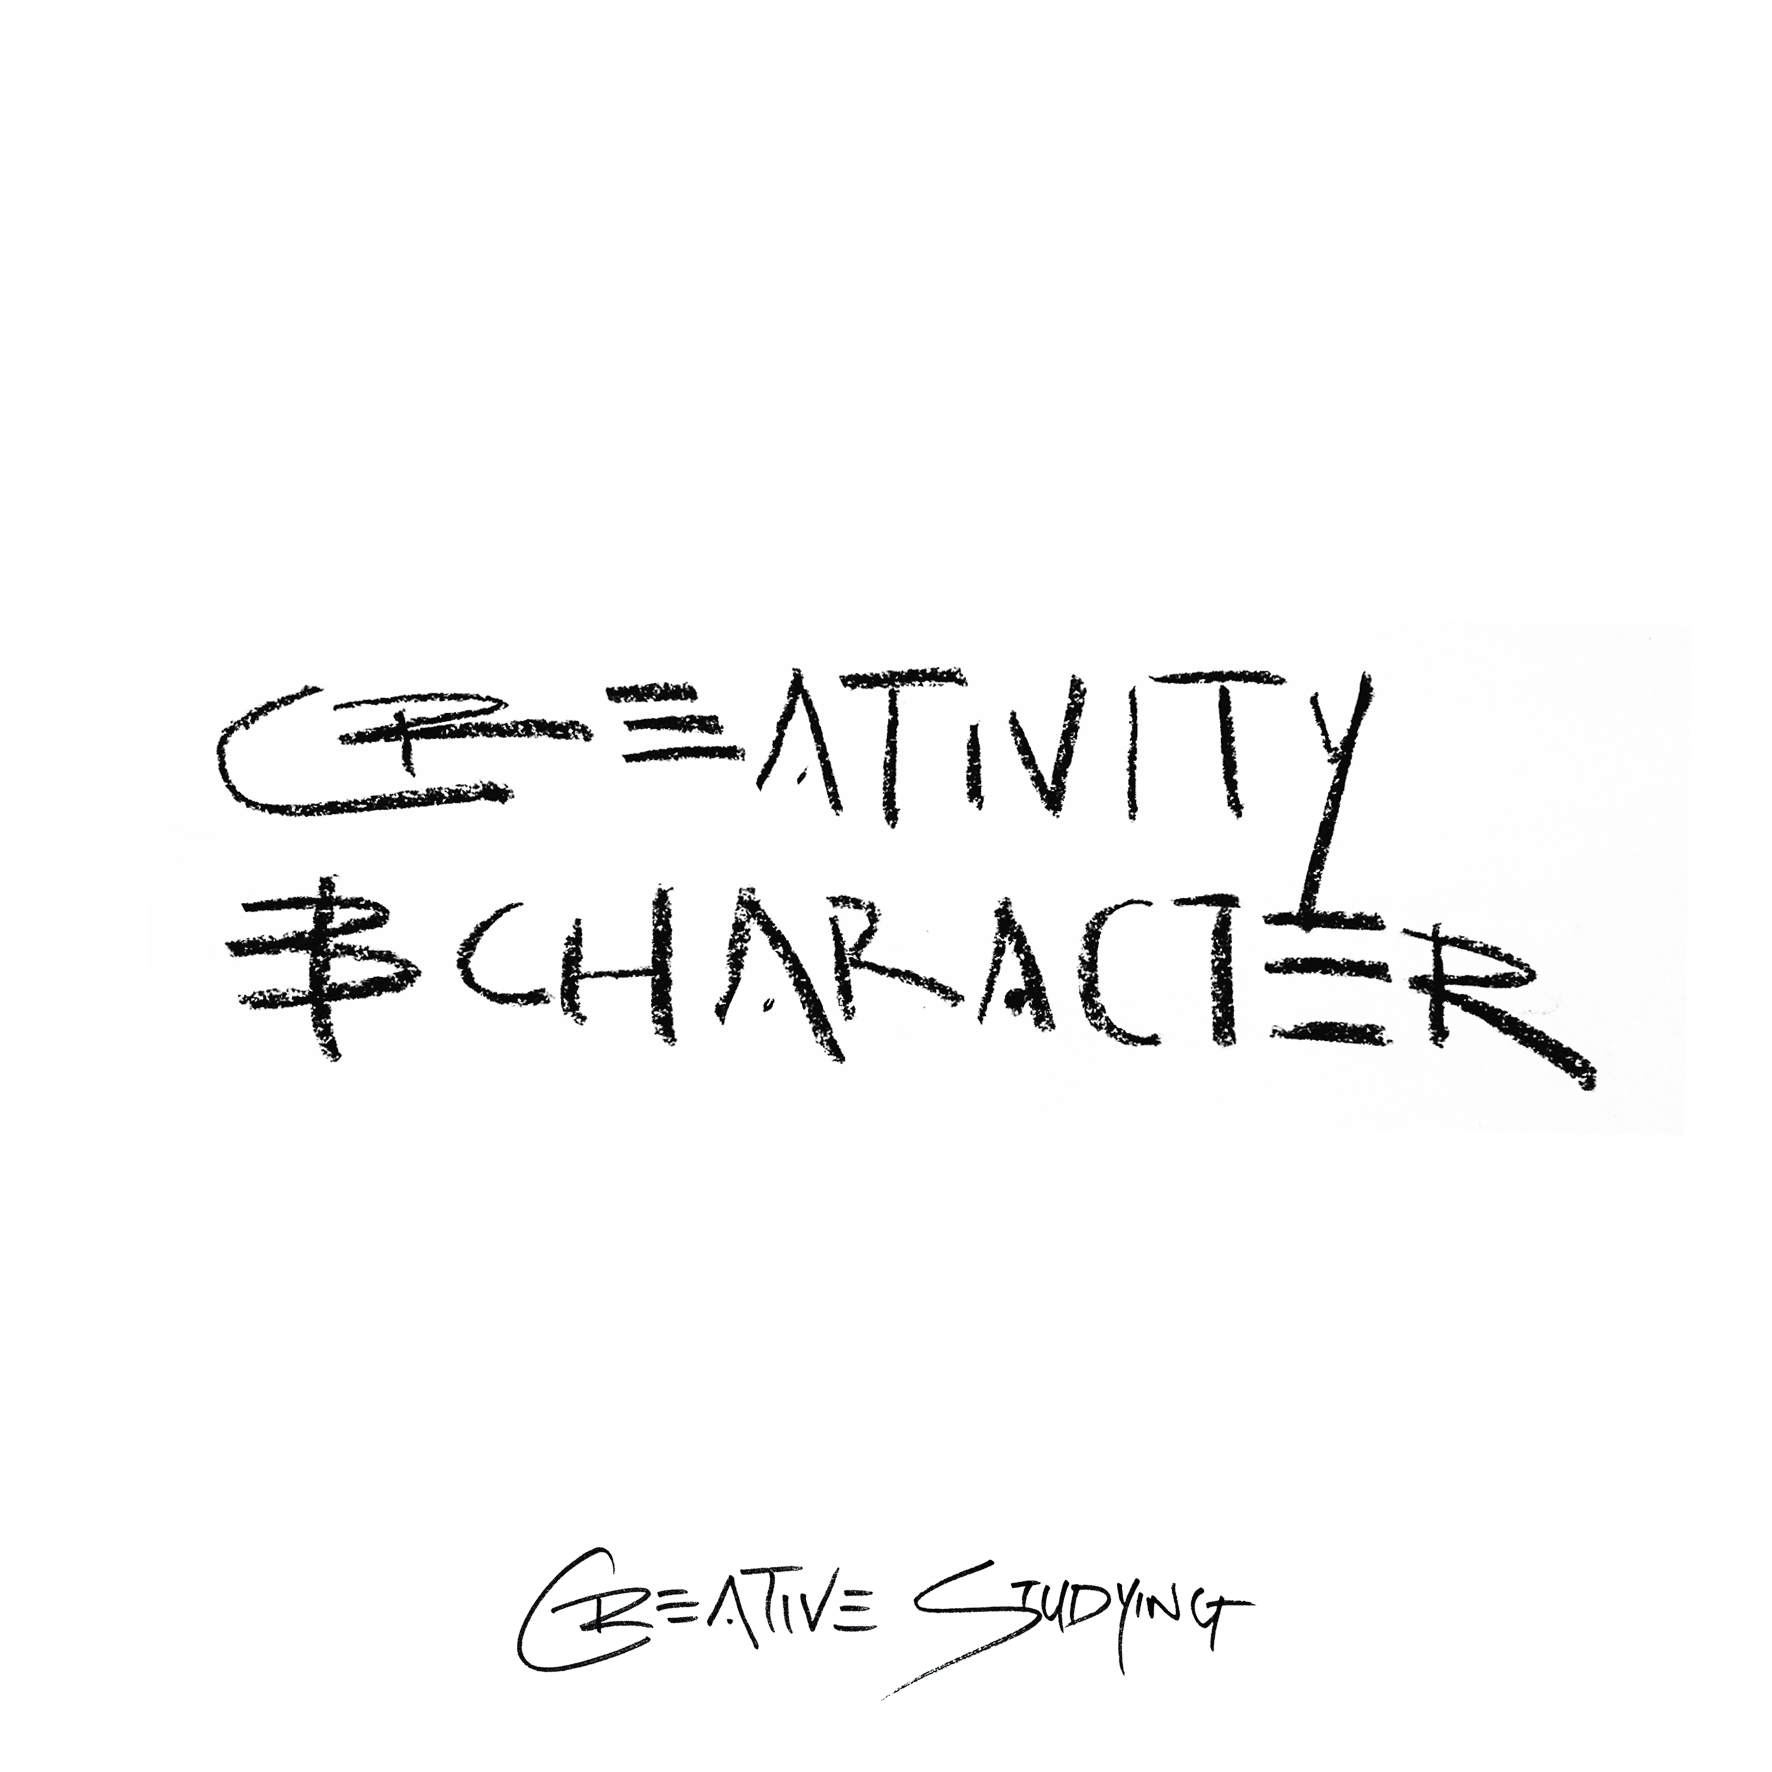 Creativity and character. The two things schools need to encourage in its students is creativity and character.